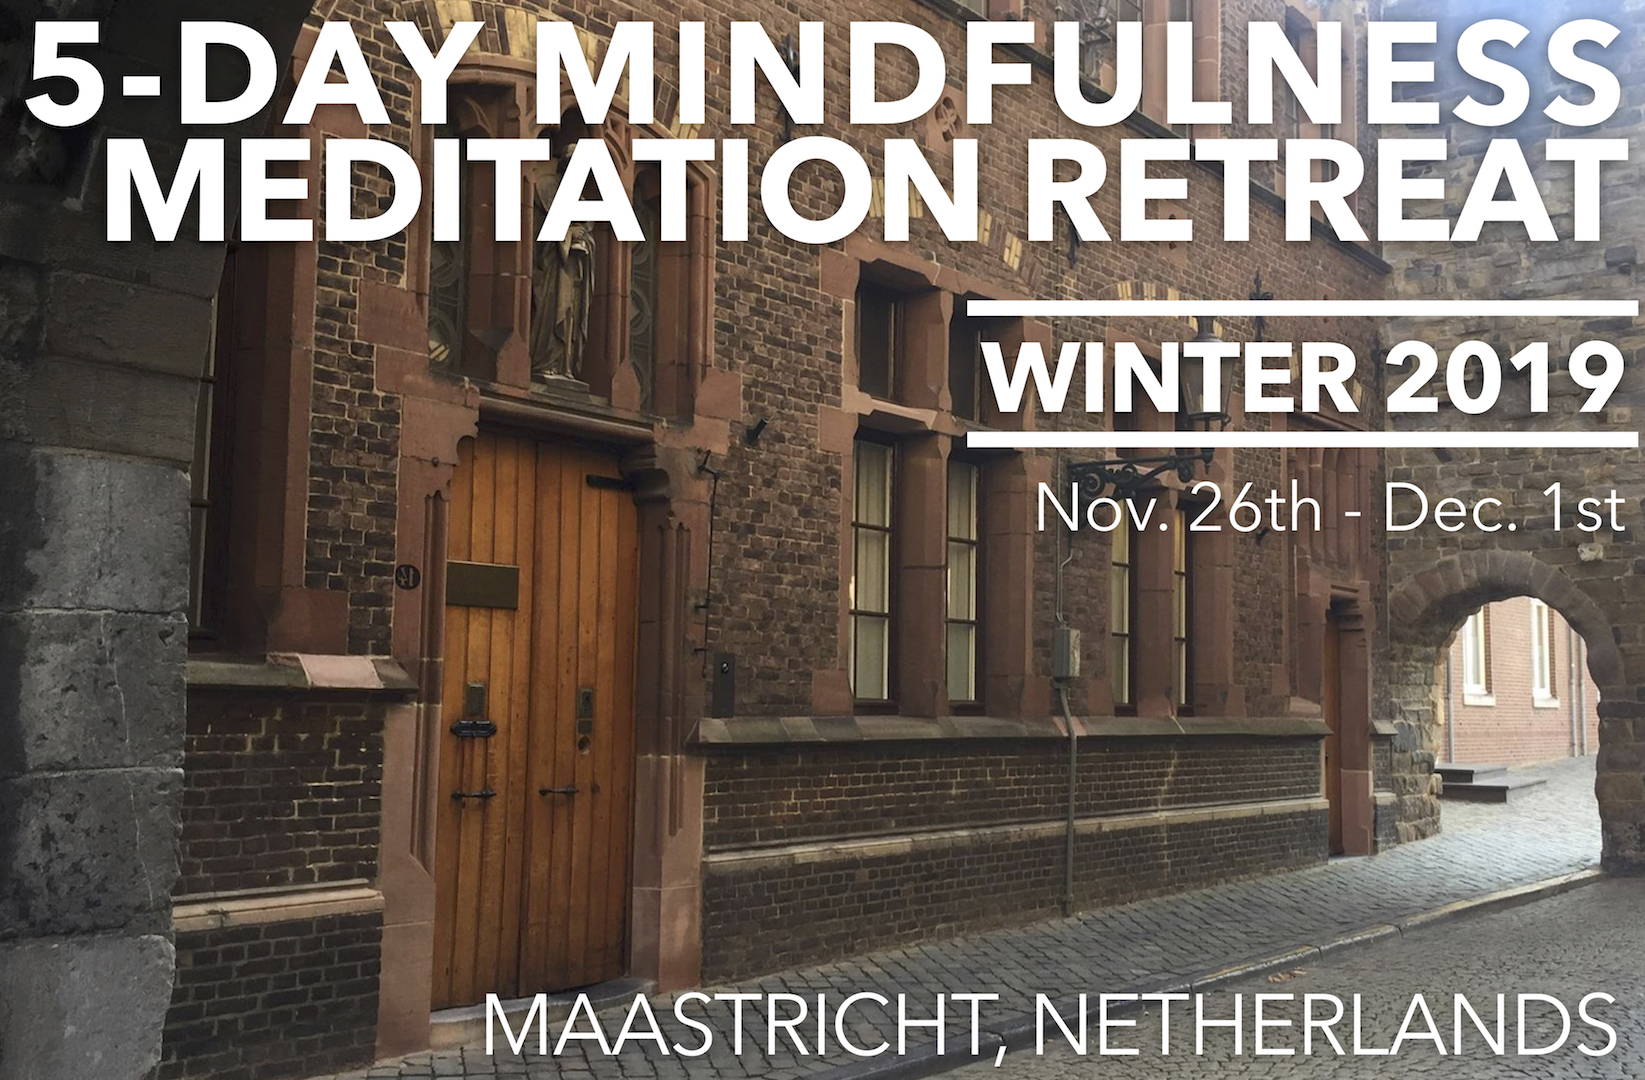 Mindfulness Meditation Retreat w/ Miles Kessler